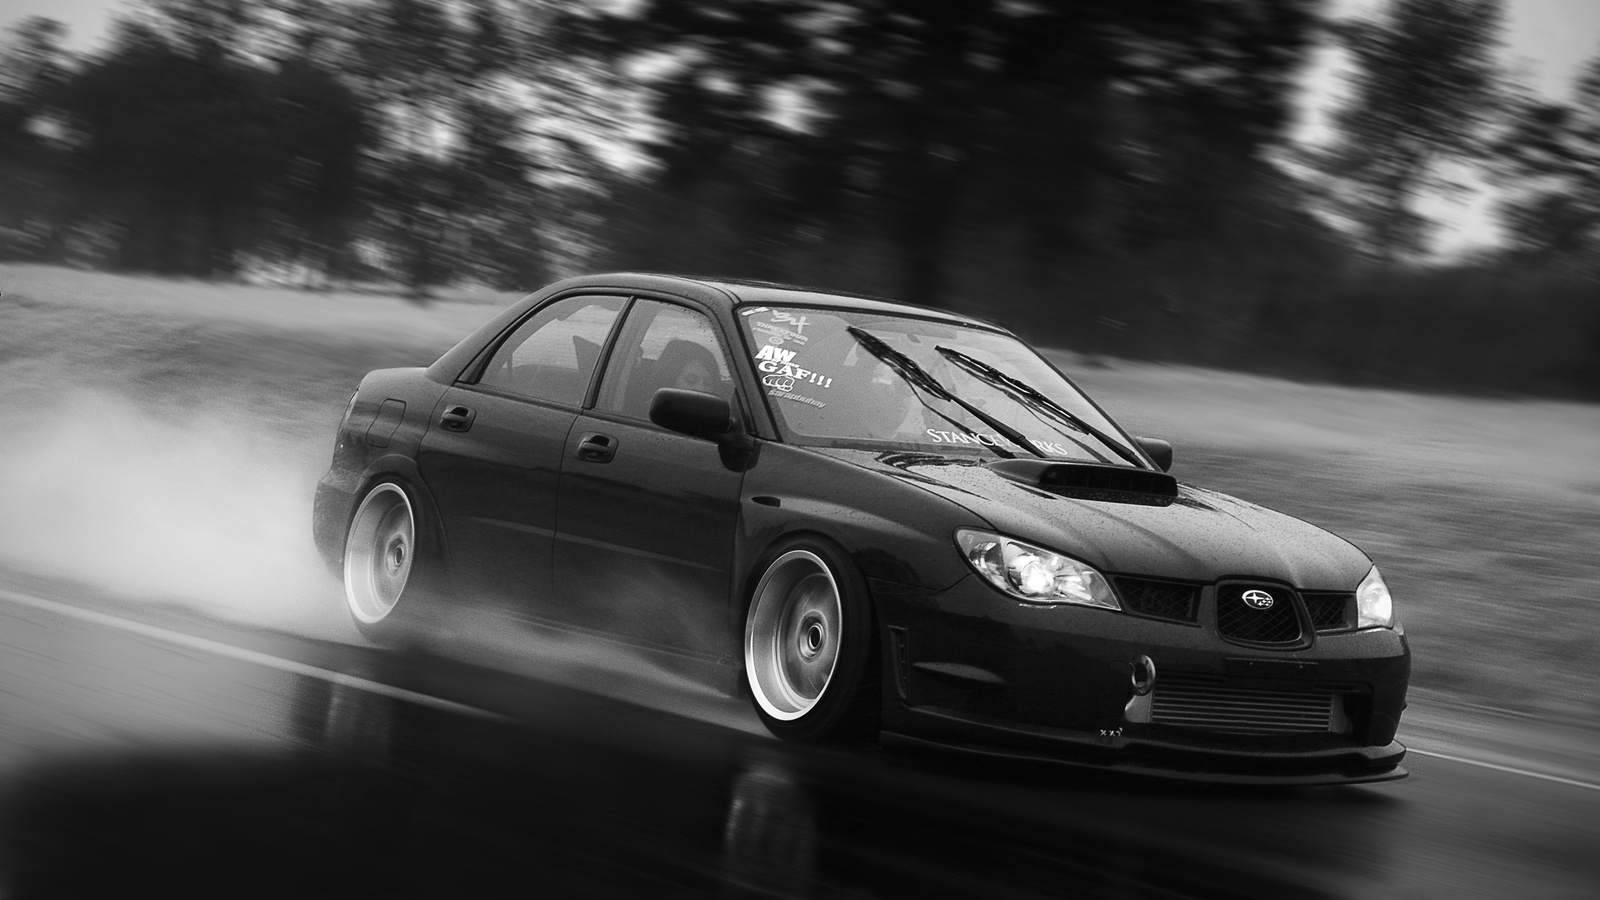 29513 download wallpaper Transport, Auto, Subaru screensavers and pictures for free